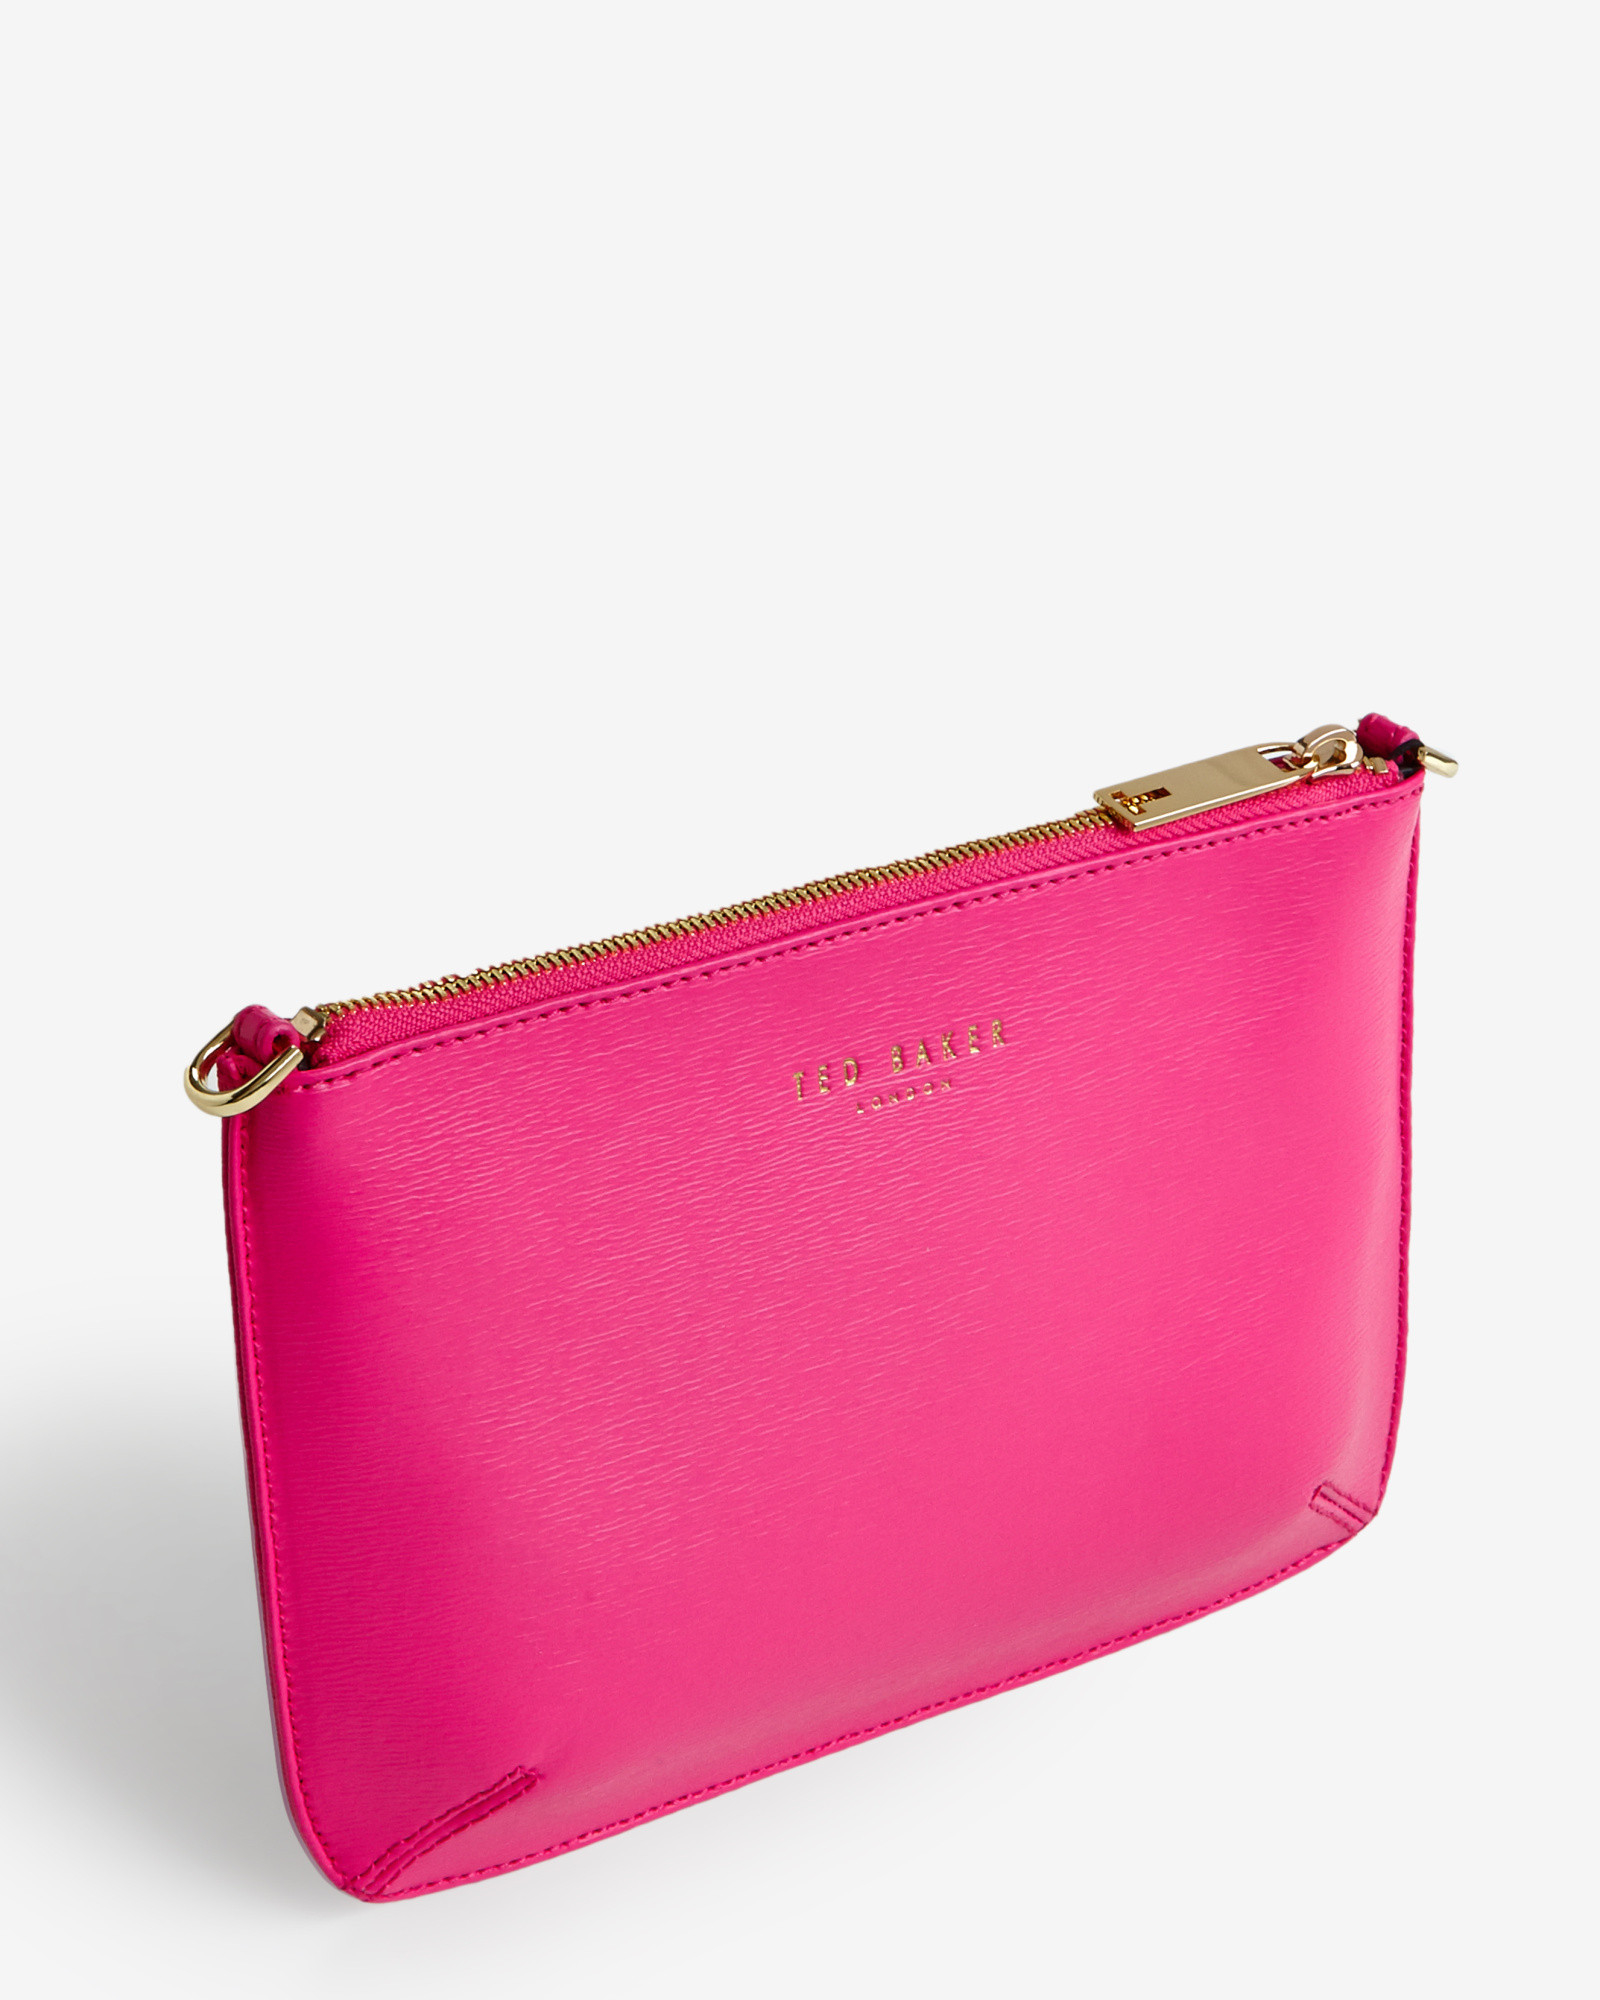 3aceb8f866 Ted Baker Crosshatch Clutch Bag in Pink - Lyst